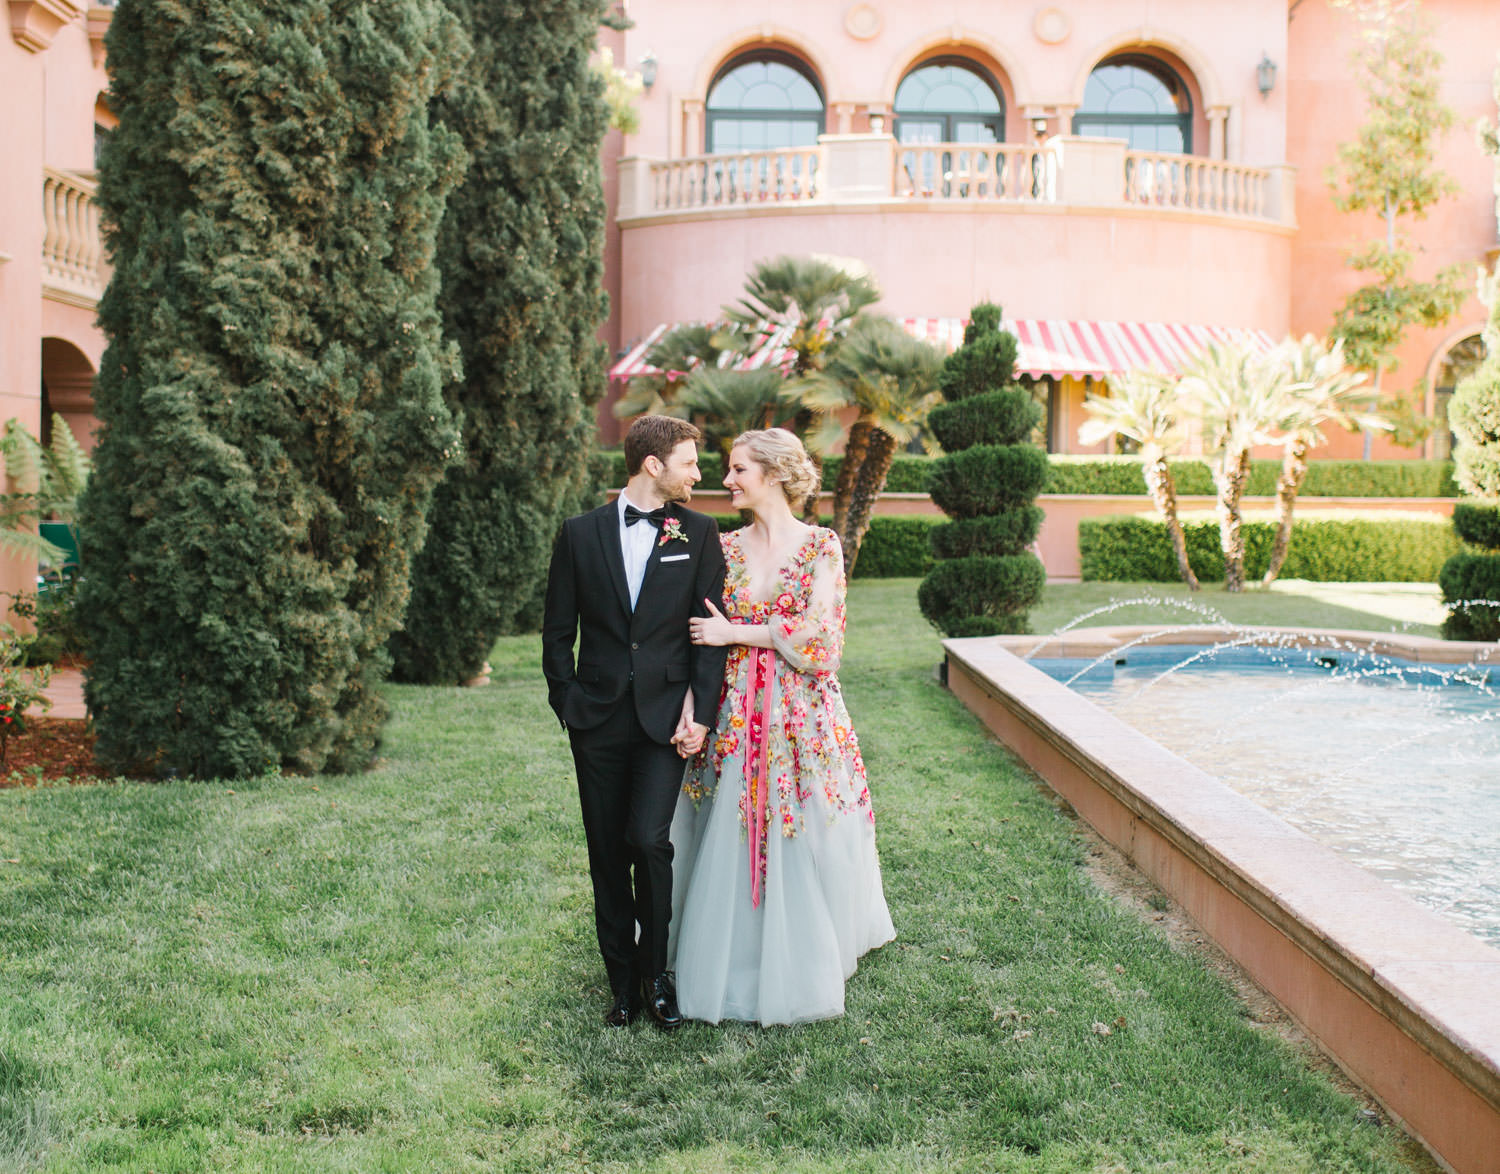 Groom in a black tux walking with bride wearing a colorful Marchesa blue and pink floral long sleeve couture gown with floral appliques. Fairmont Grand del Mar wedding published on Martha Stewart Weddings